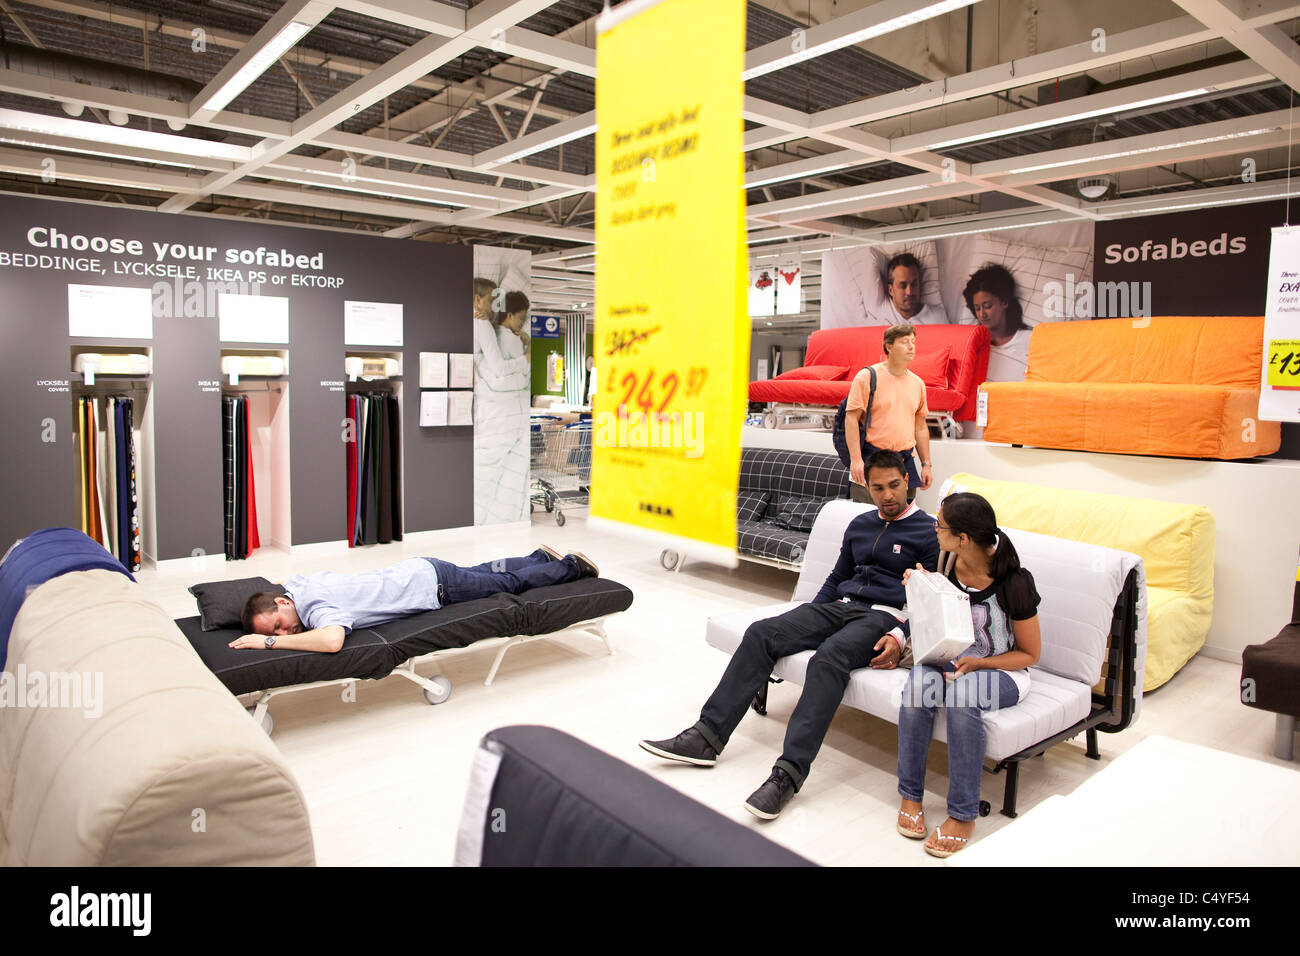 Ikea stock photos ikea stock images alamy for Someone to assemble ikea furniture